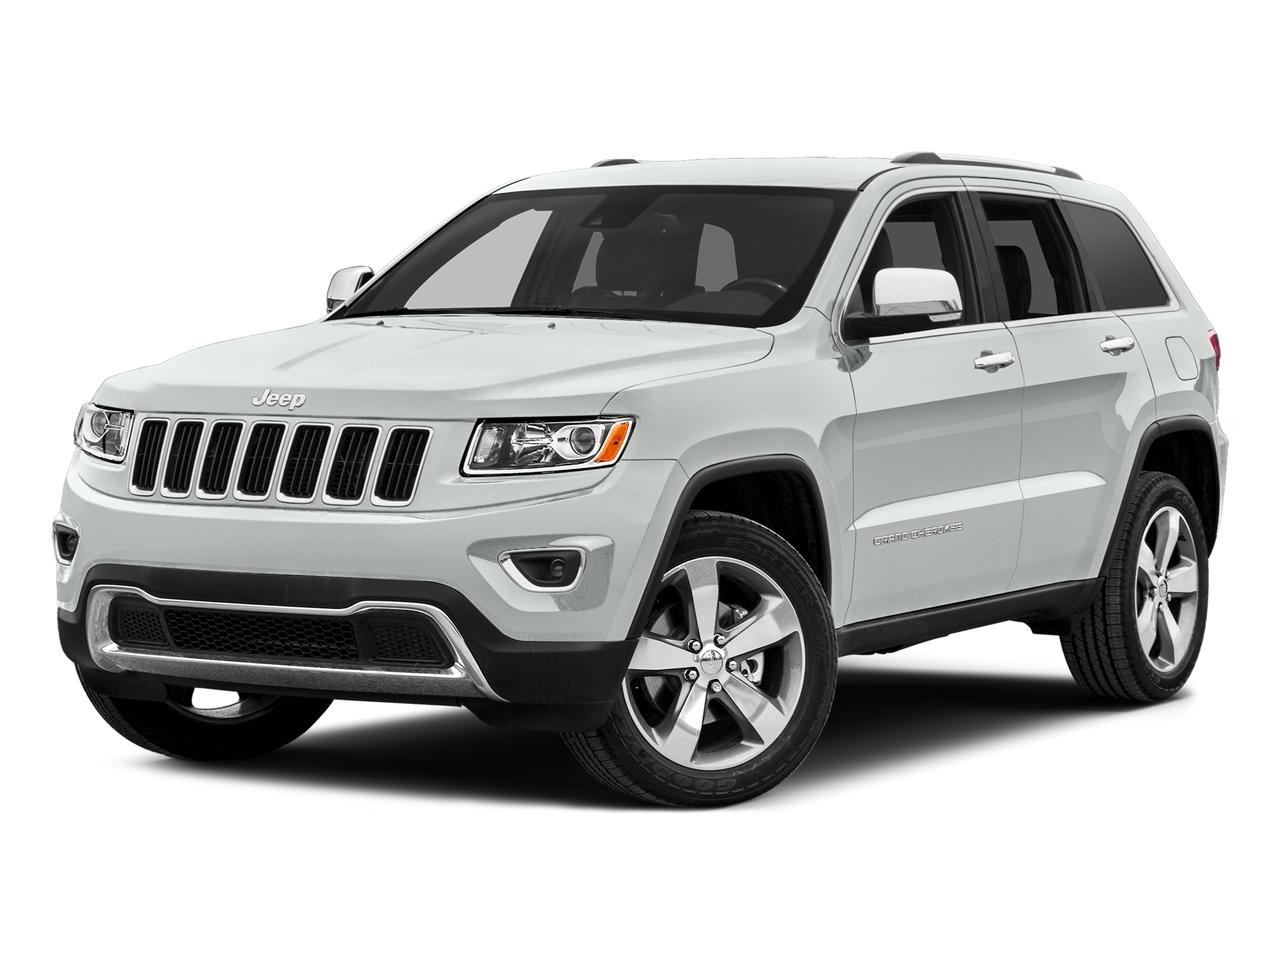 2015 Jeep Grand Cherokee Vehicle Photo in Pittsburg, CA 94565